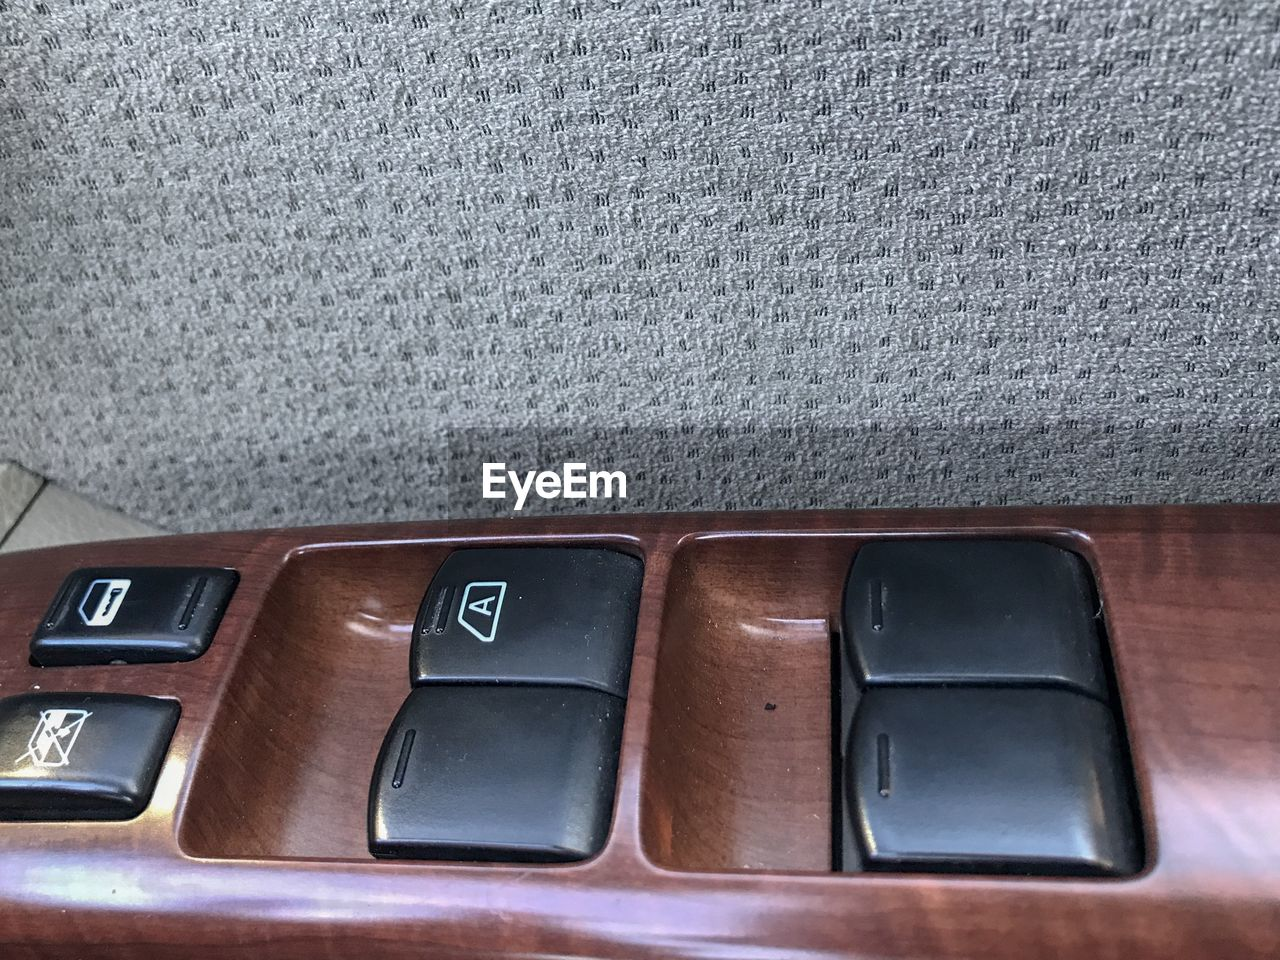 close-up, indoors, number, no people, text, communication, side by side, high angle view, technology, table, transportation, mode of transportation, wood - material, car, still life, western script, glass - material, push button, vehicle interior, connection, leather